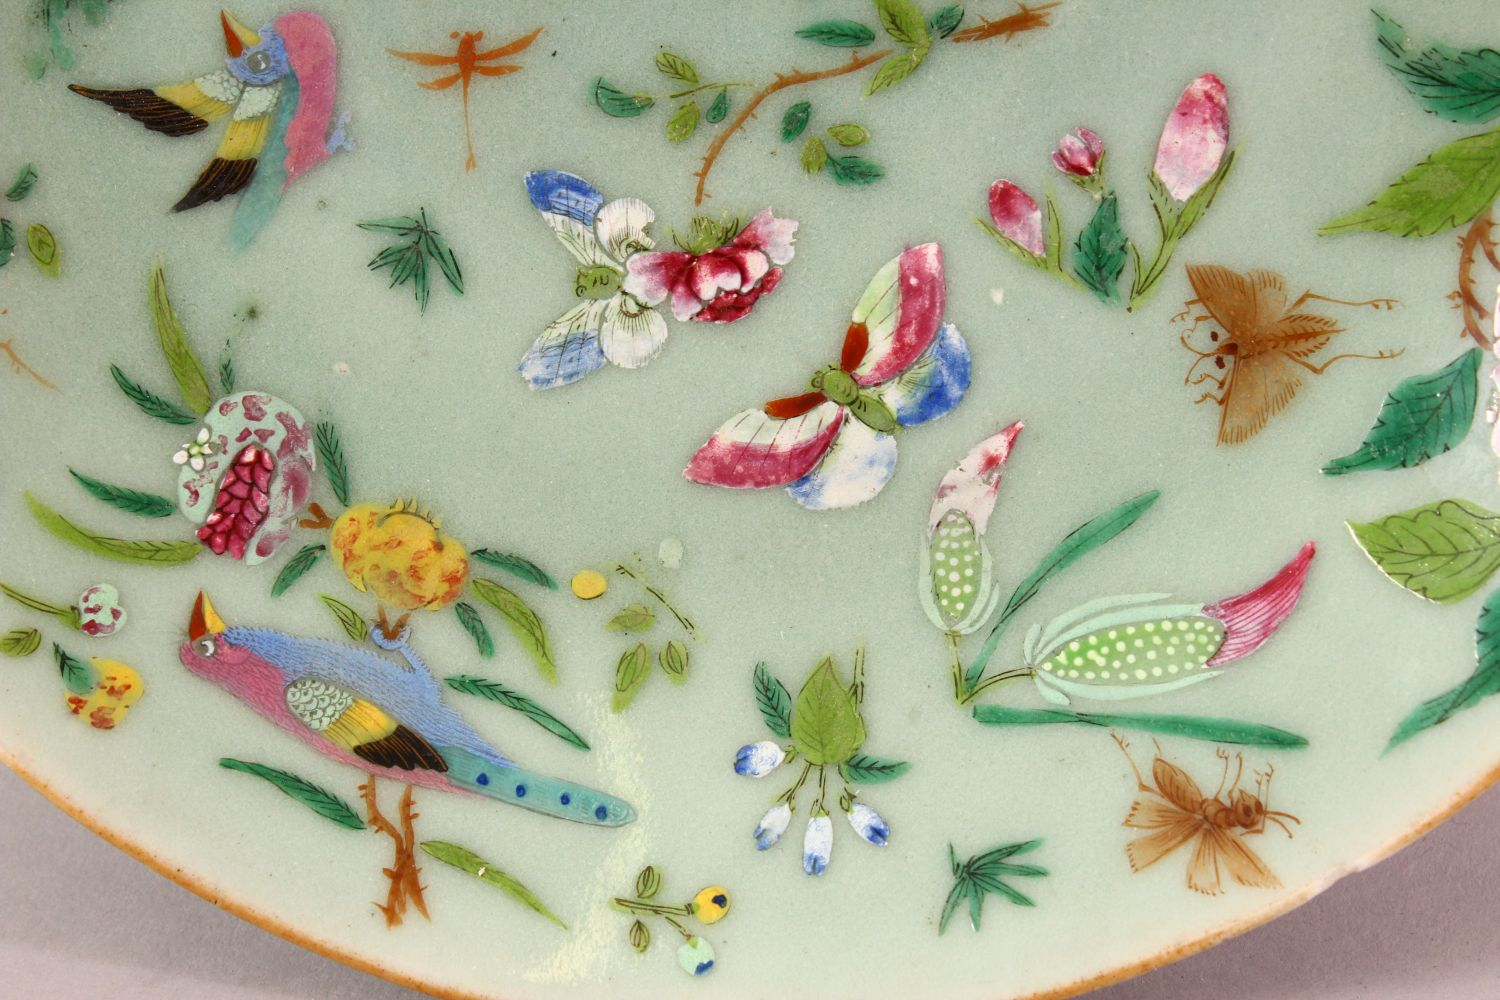 A 19TH CENTURY CHINESE CELADON FAMILLE ROSE PORCELAIN PLATE, With decoration of birds, flowers and - Image 4 of 7